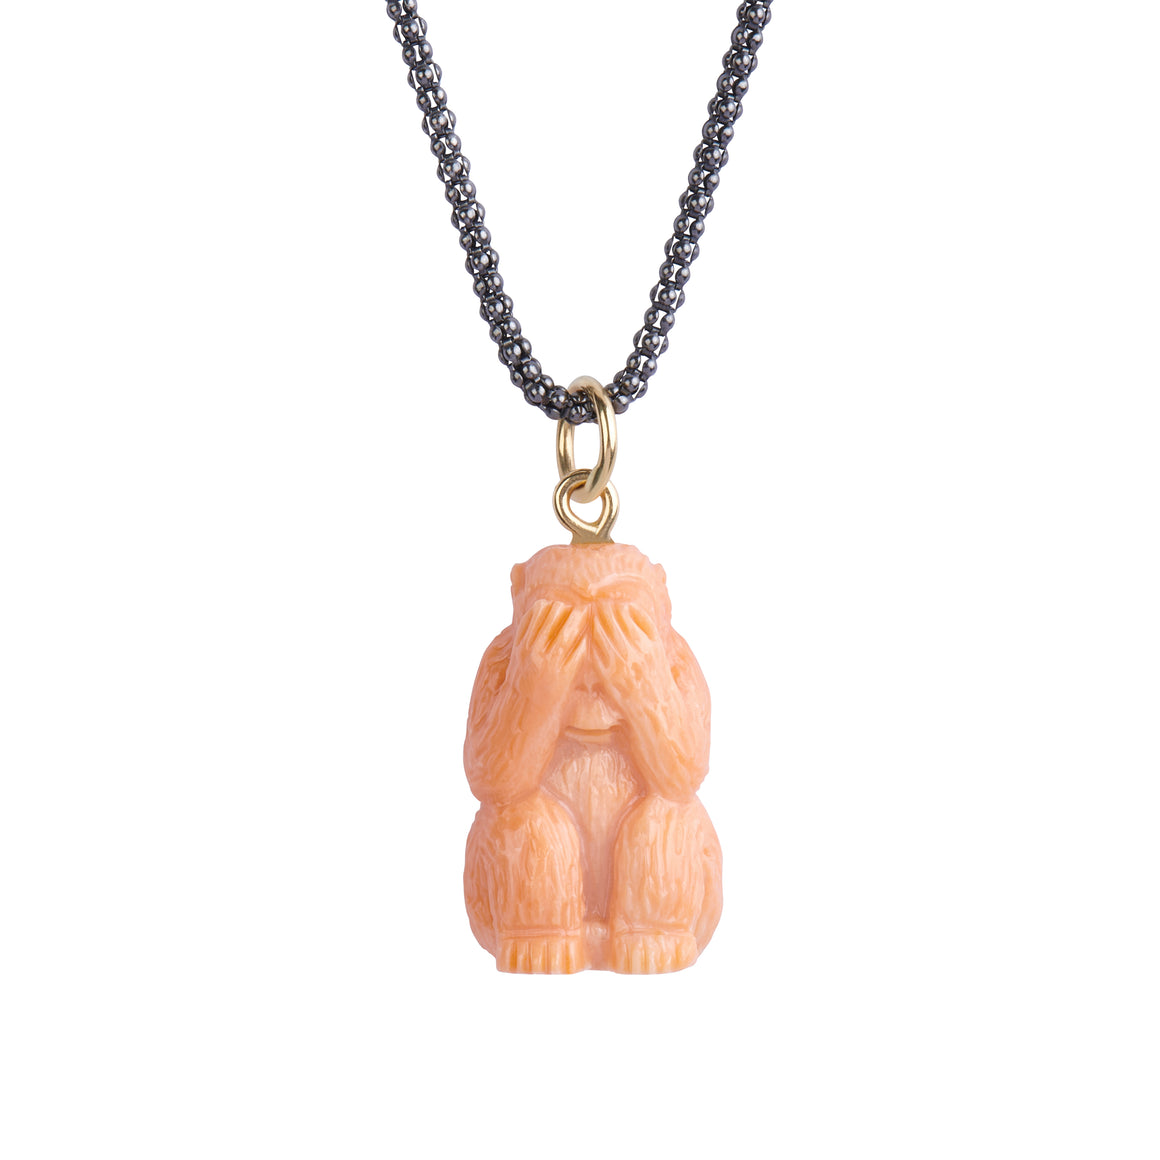 One-of-a-Kind See No Evil Coral Monkey Necklace - PRICE IS $499 WHEN USE CODE SUMMERFINAL50 FOR 50% OFF